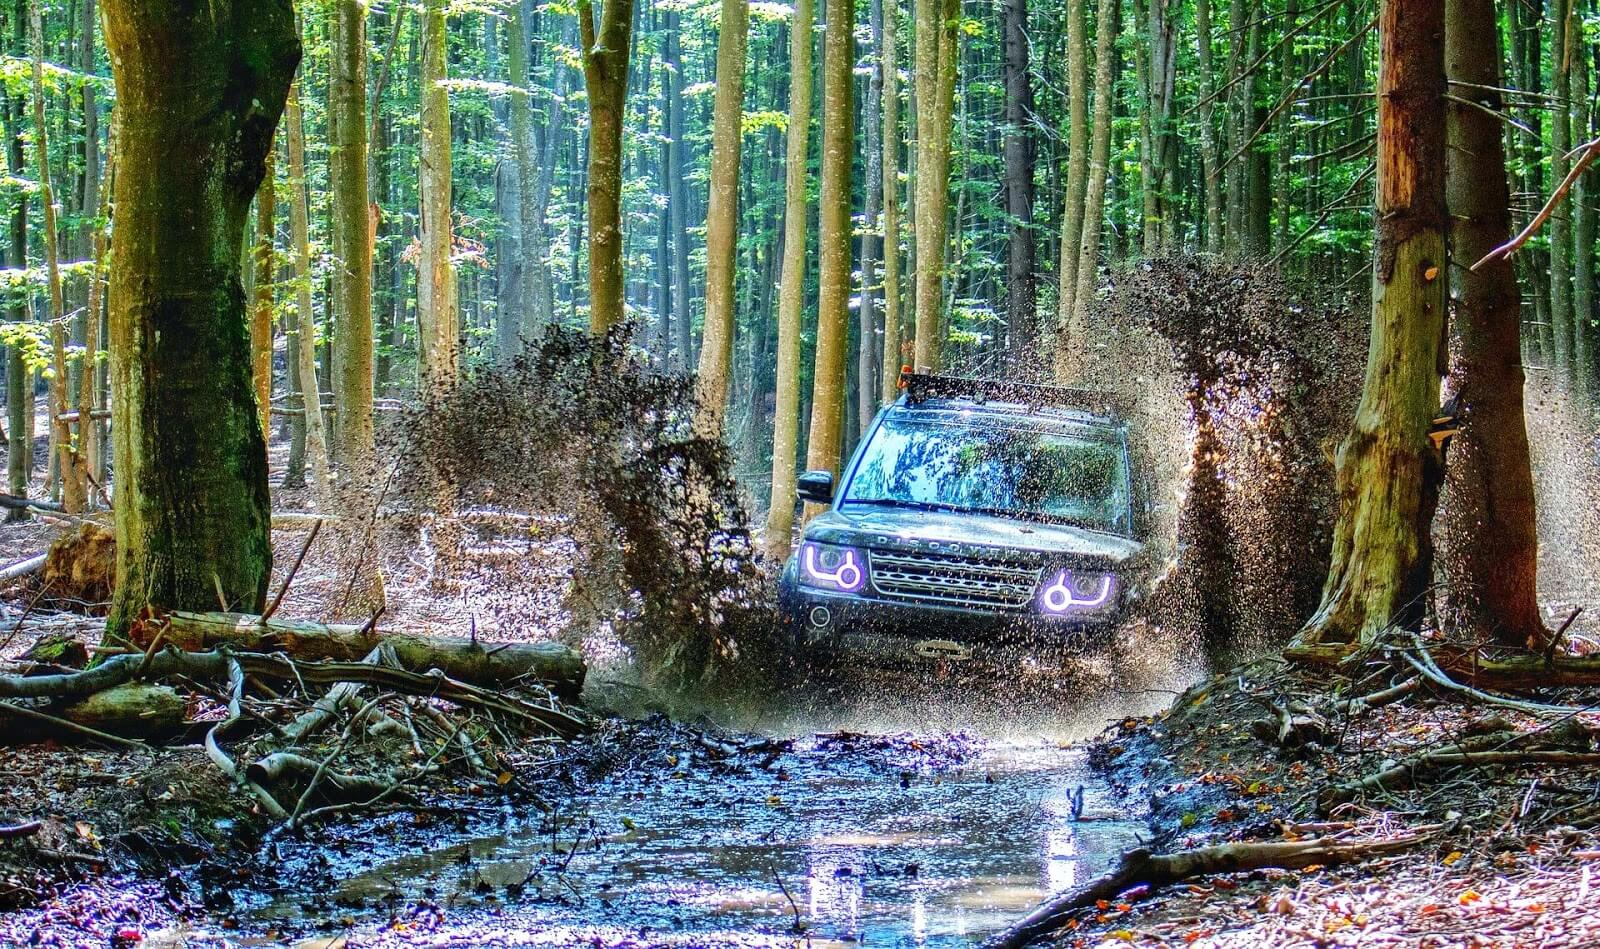 Does traction control help in mud? | traction control vs lockers on off-roading